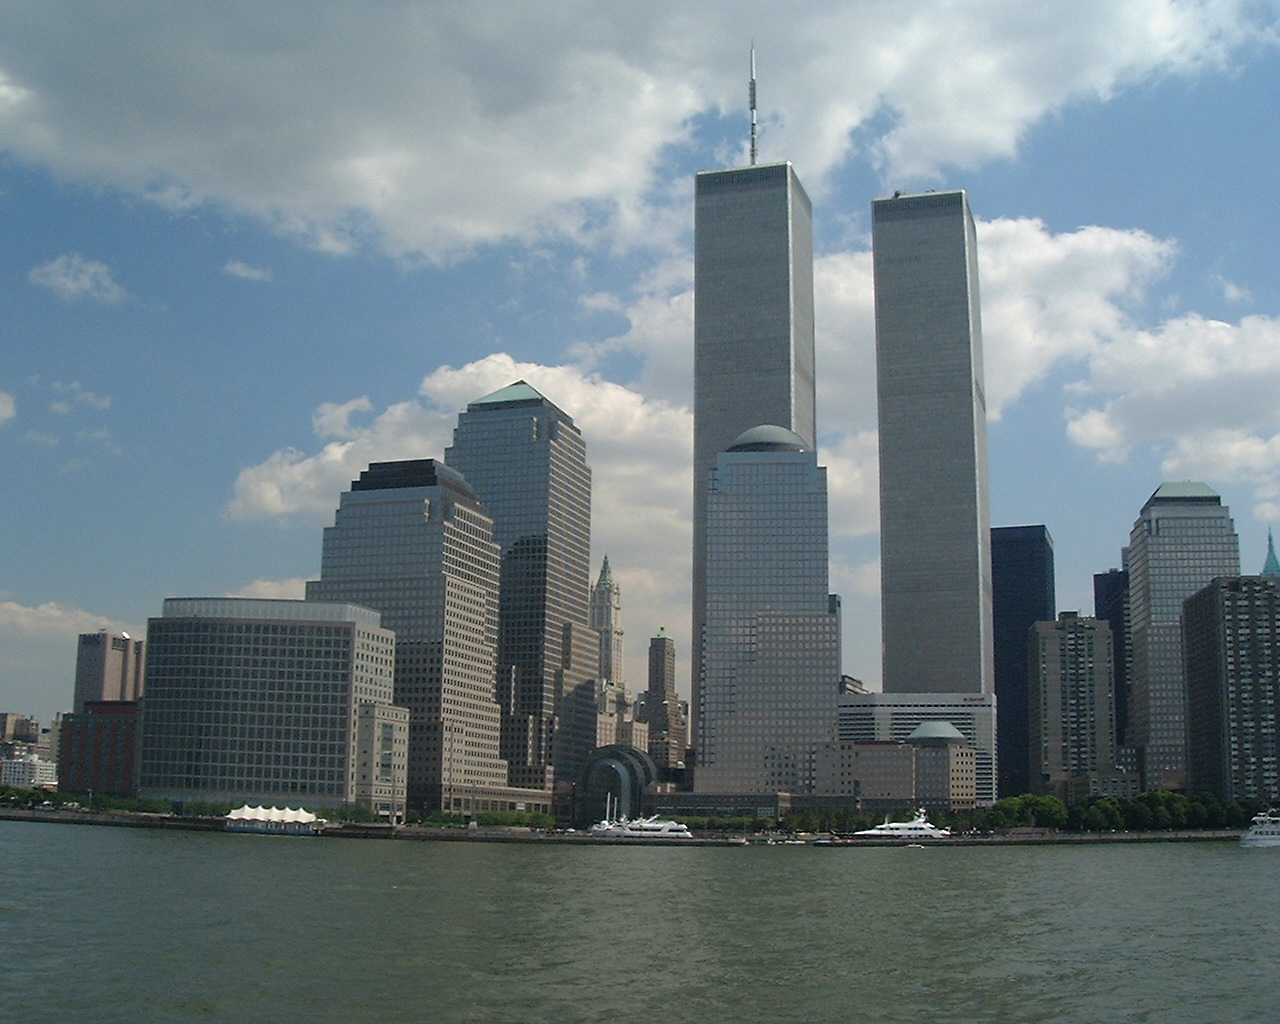 File:World trade center new